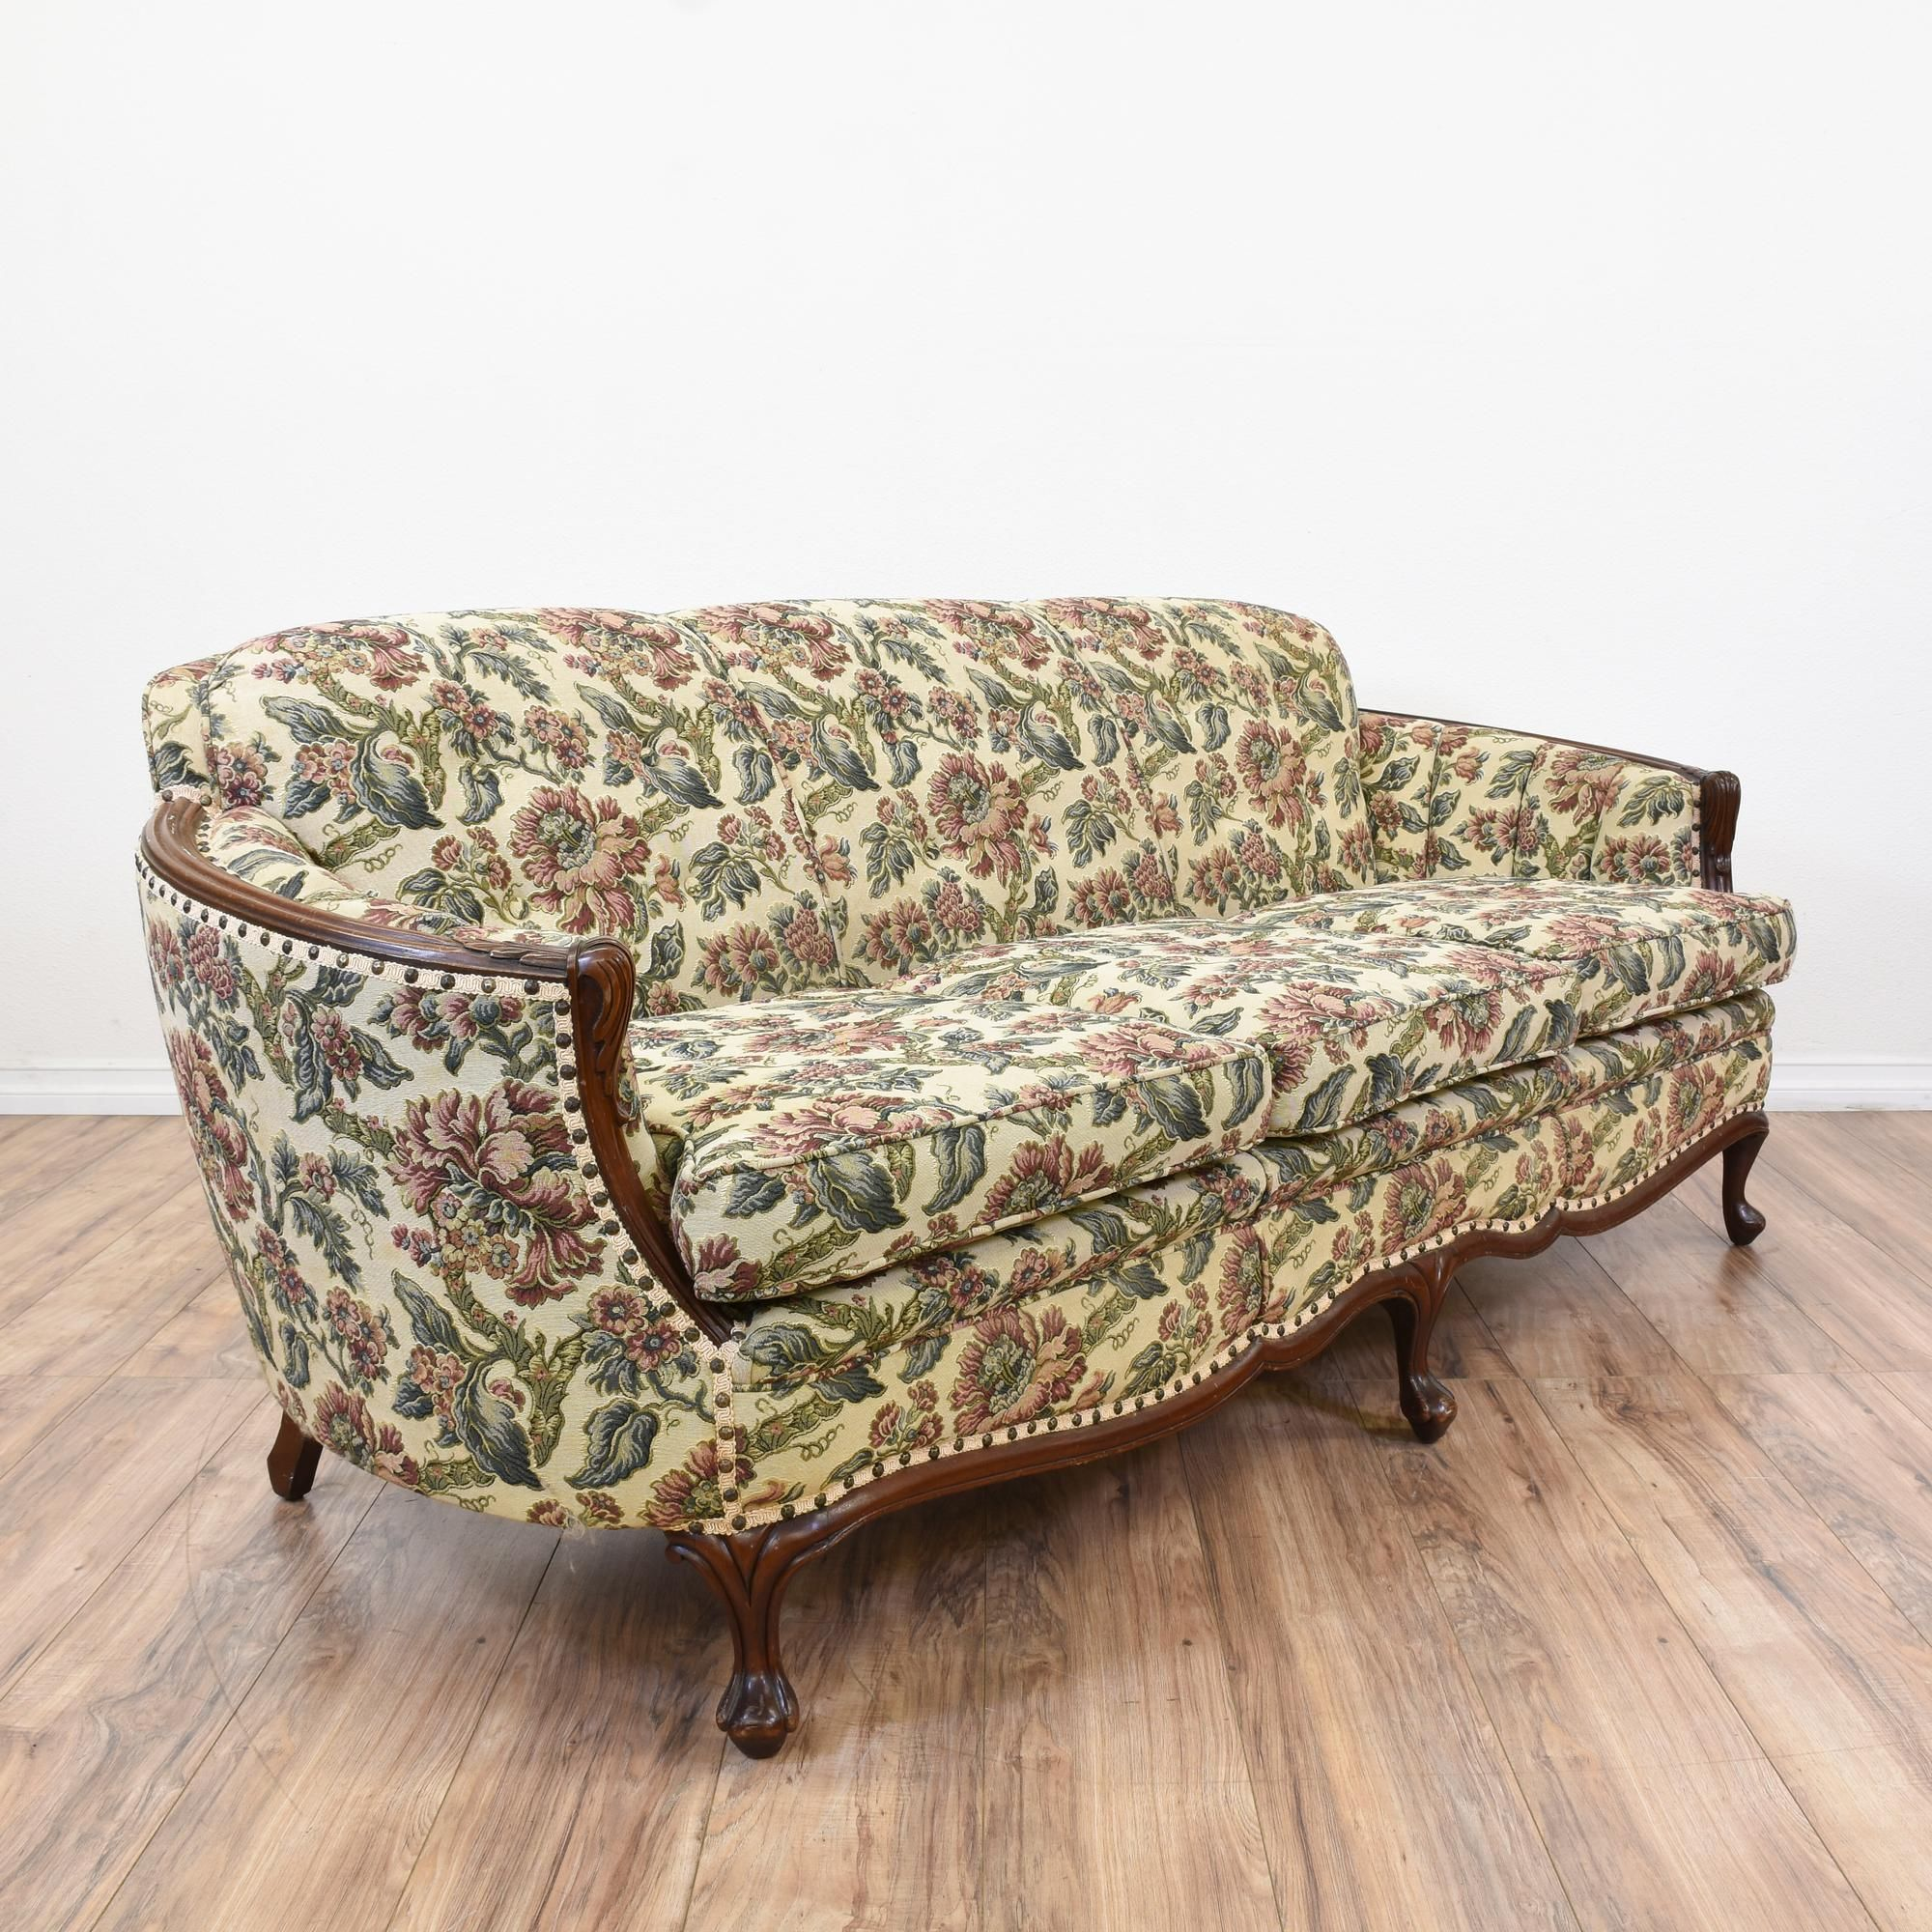 French Floral Tufted Sofa